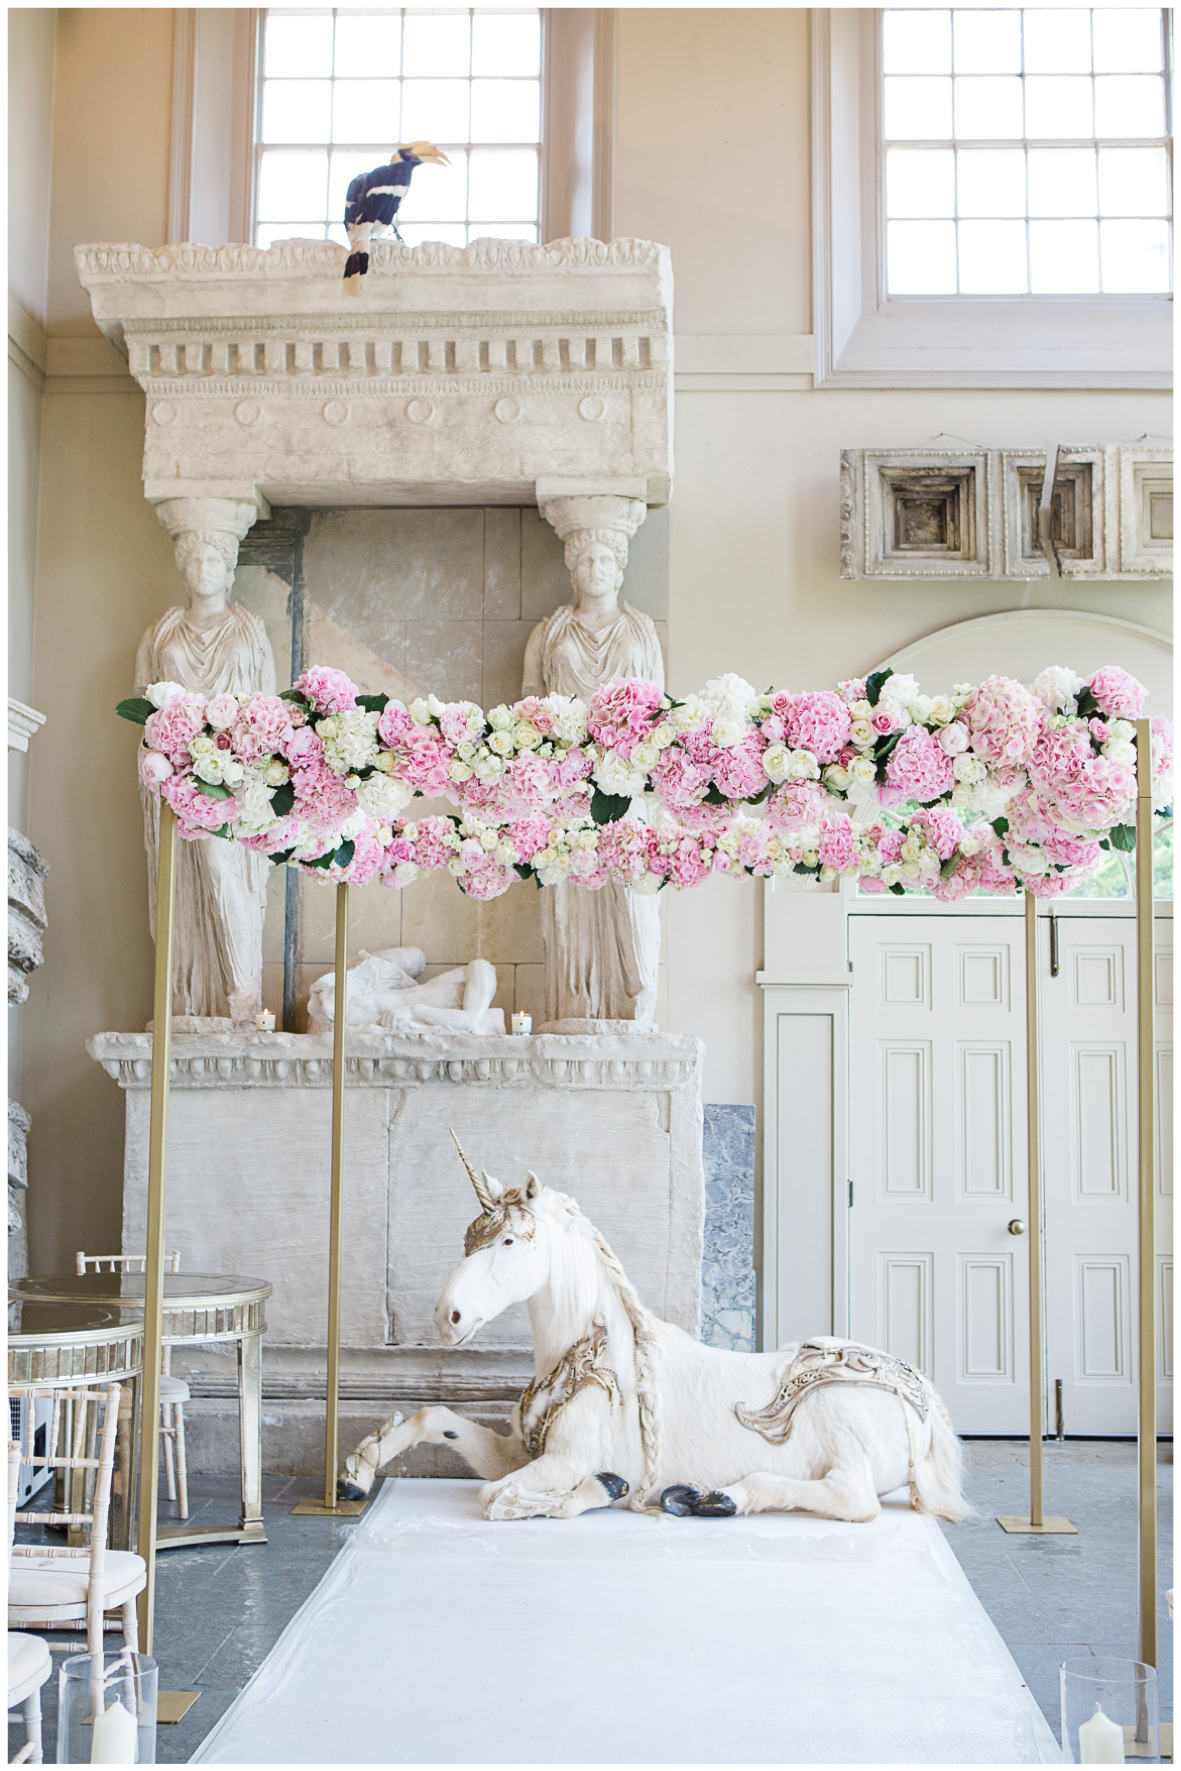 Lucy Davenport Photography, Aynhoe Park, Oxfordshire, wedding venue, Rock My Wedding, Orangery, Unicorn, floral chuppa